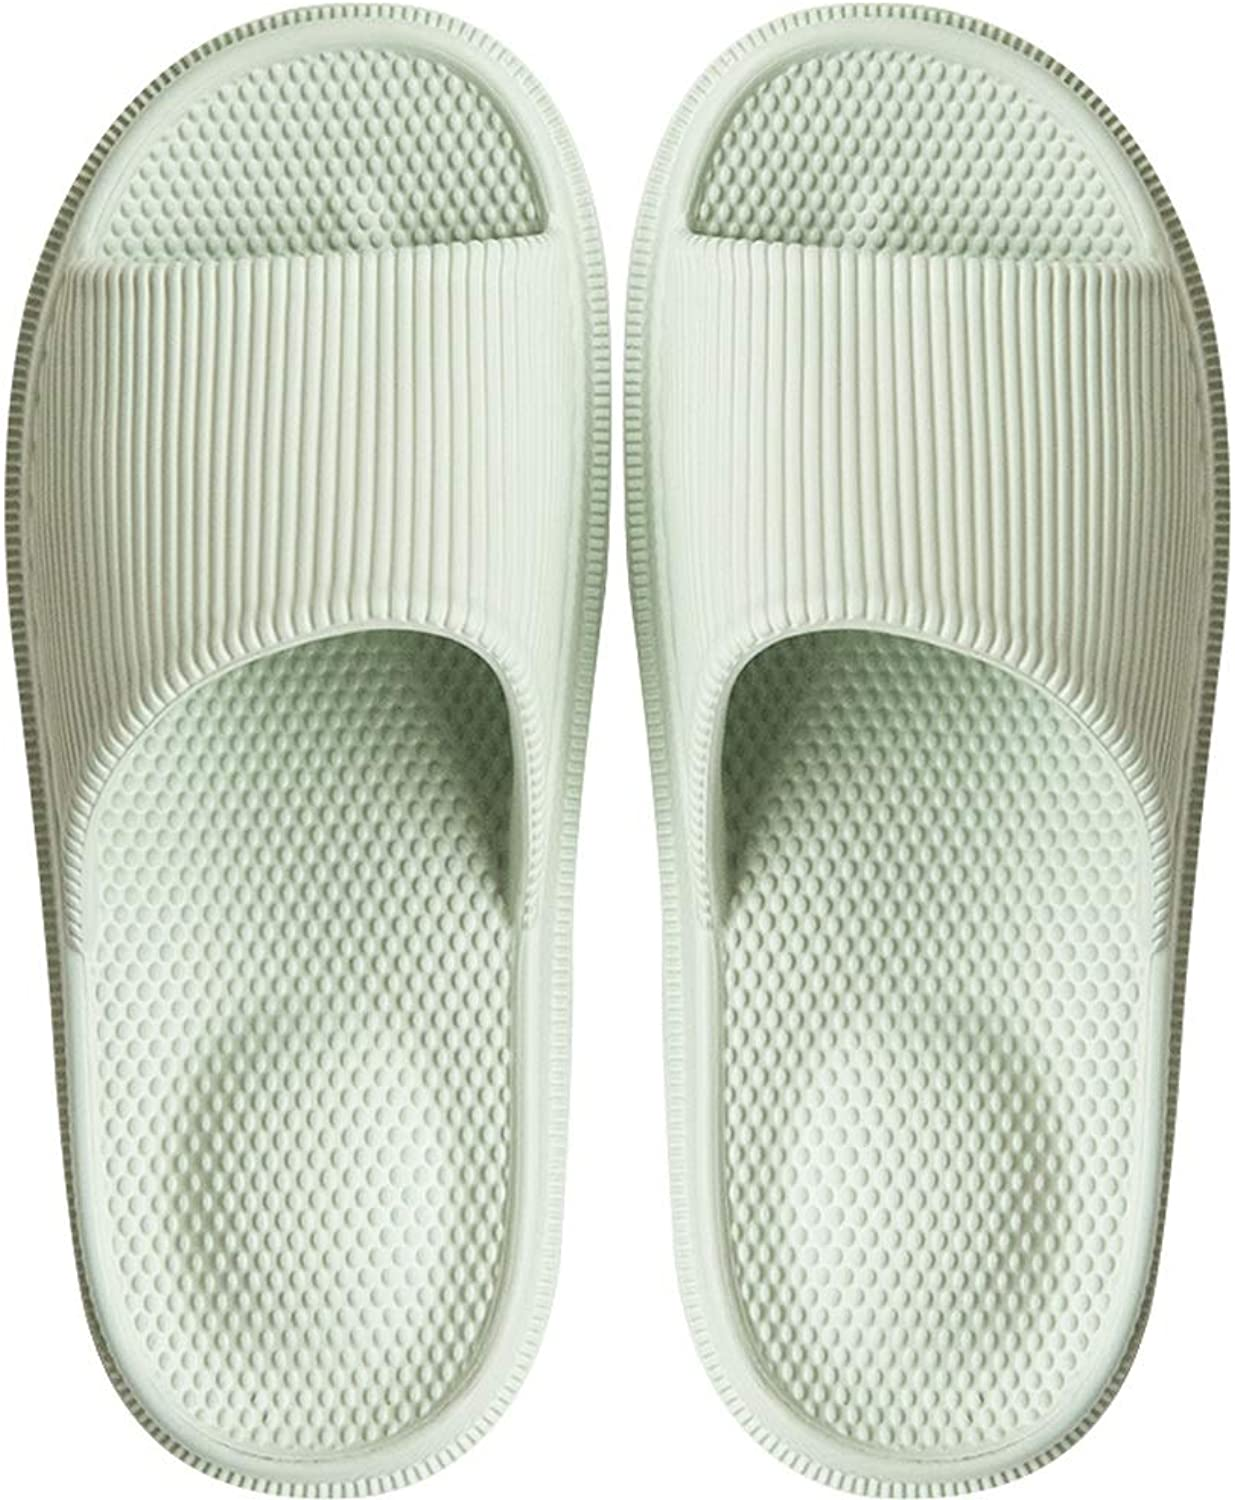 Xiao Jian Slippers Men's Massage Summer Home Furnishing Bathroom Bathing Non-Slip Outdoor Couples Women's Thick Foundation Slippers flip Flop (color   I, Size   35code)